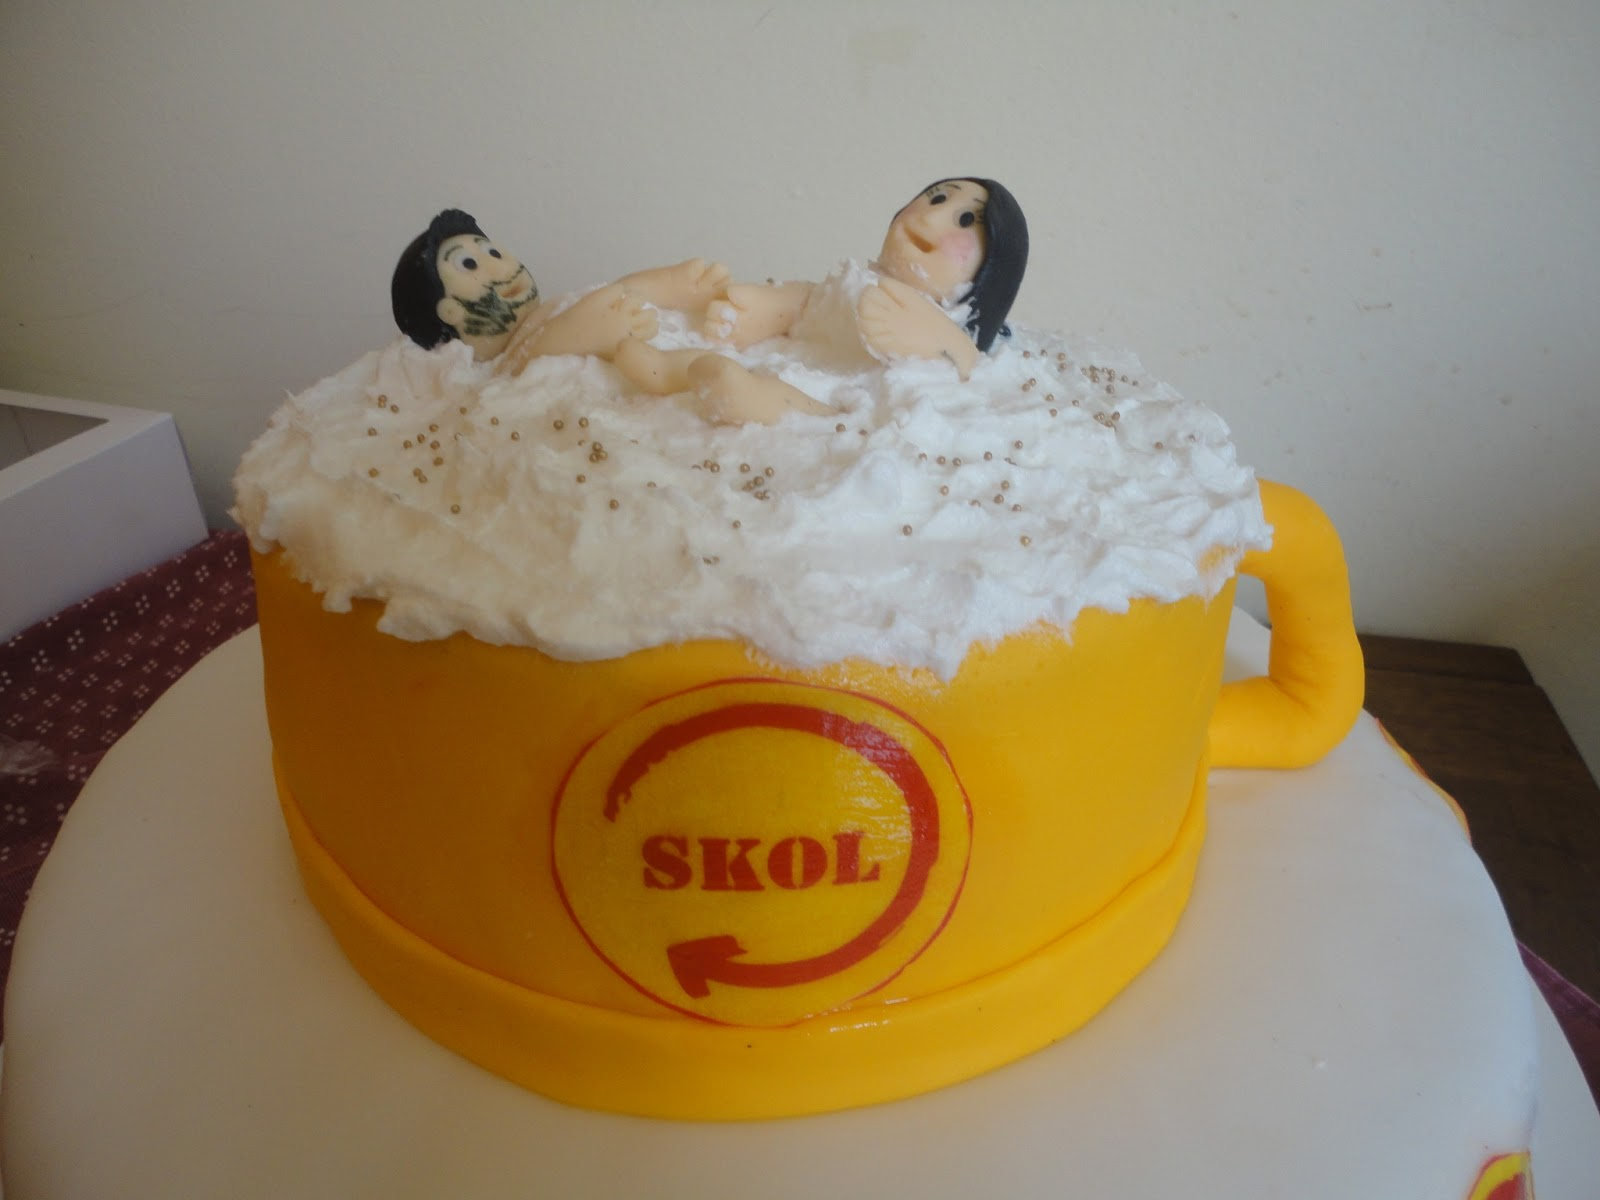 Suficiente Cake Feelings: Bolo cerveja Skol! TC37